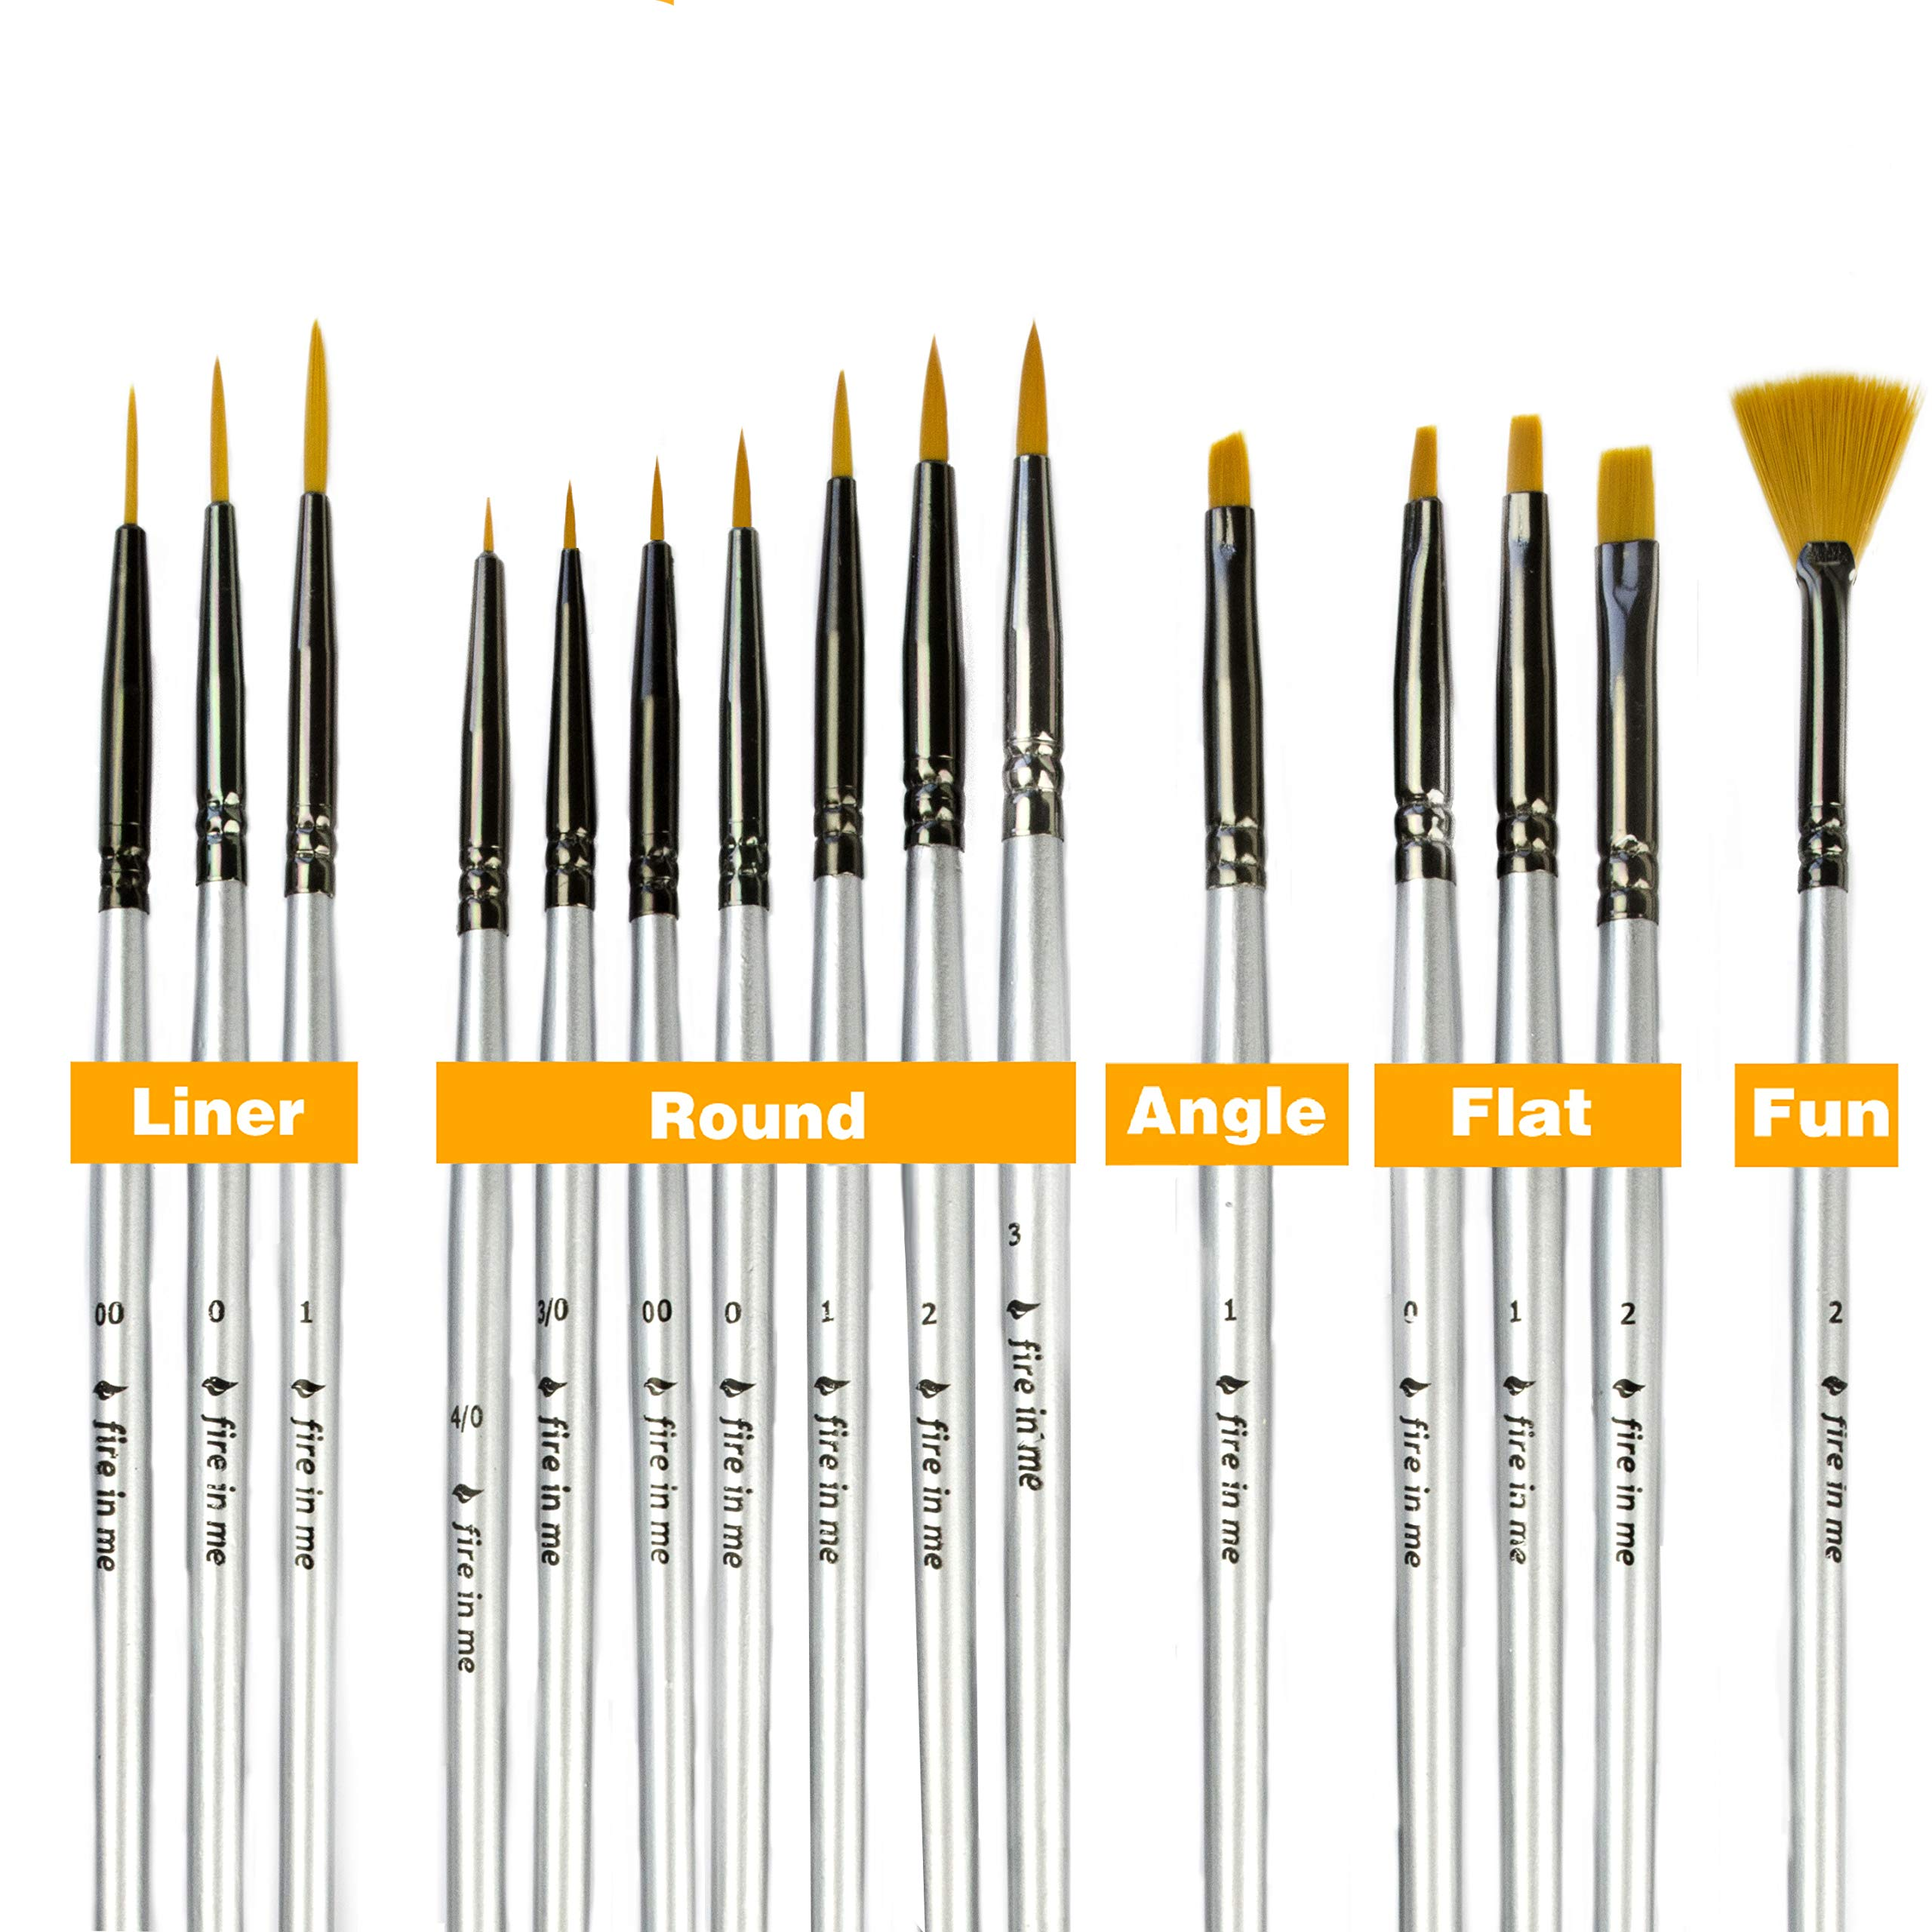 Premium Fine Detail Paint Brush Set of 15 pcs, Miniature Paint Brushes kit, Tiny Small Model Brushes for Acrylic Painting, Watercolor Oil - for Miniatures, Fine Detailing, Model, Art Hobby Supplies by fire in me